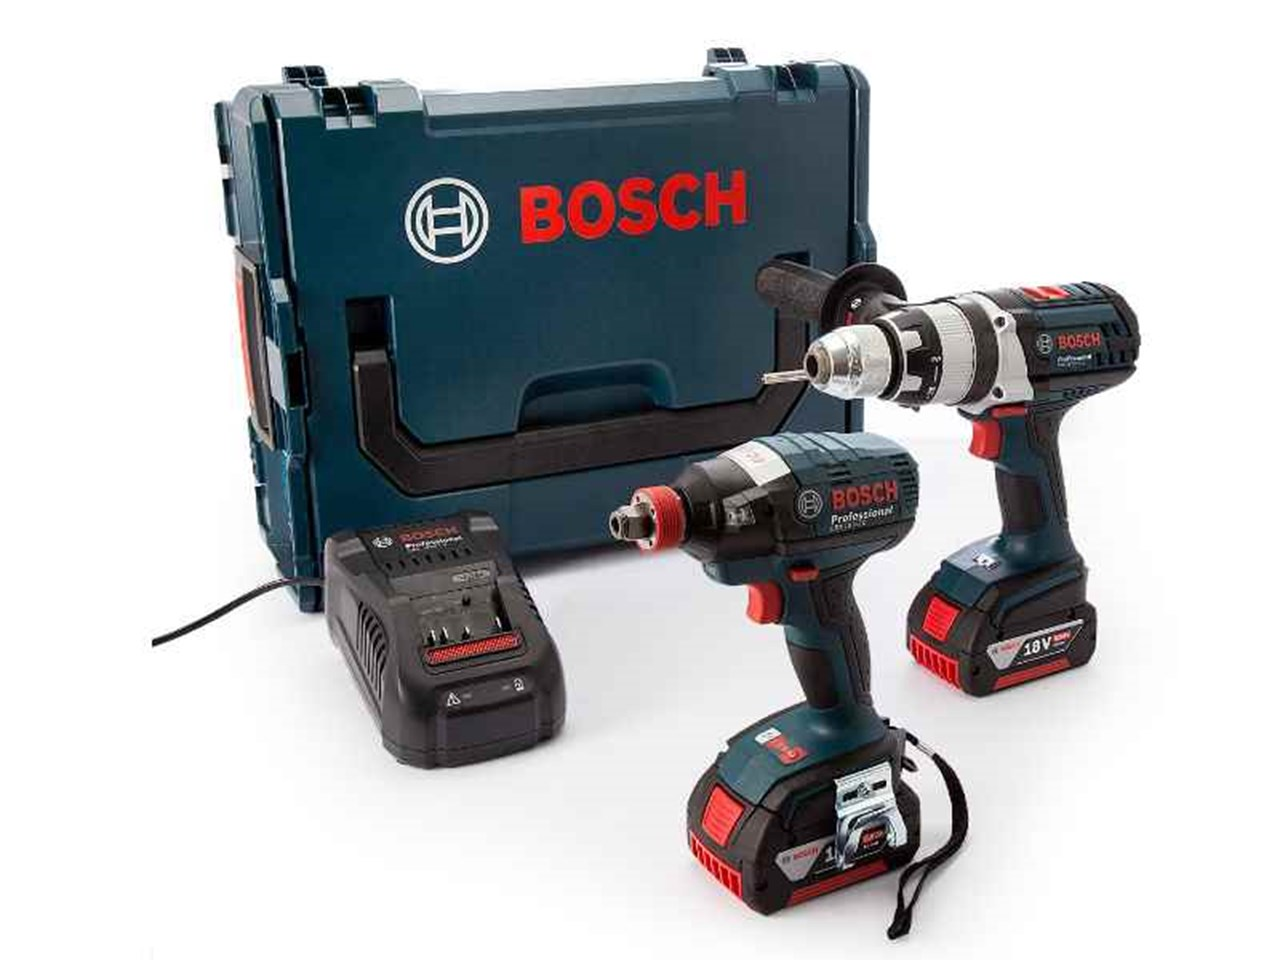 bosch rgsbgdx185 18v 2x5 0ah cordless combi drill impact wrench kit. Black Bedroom Furniture Sets. Home Design Ideas